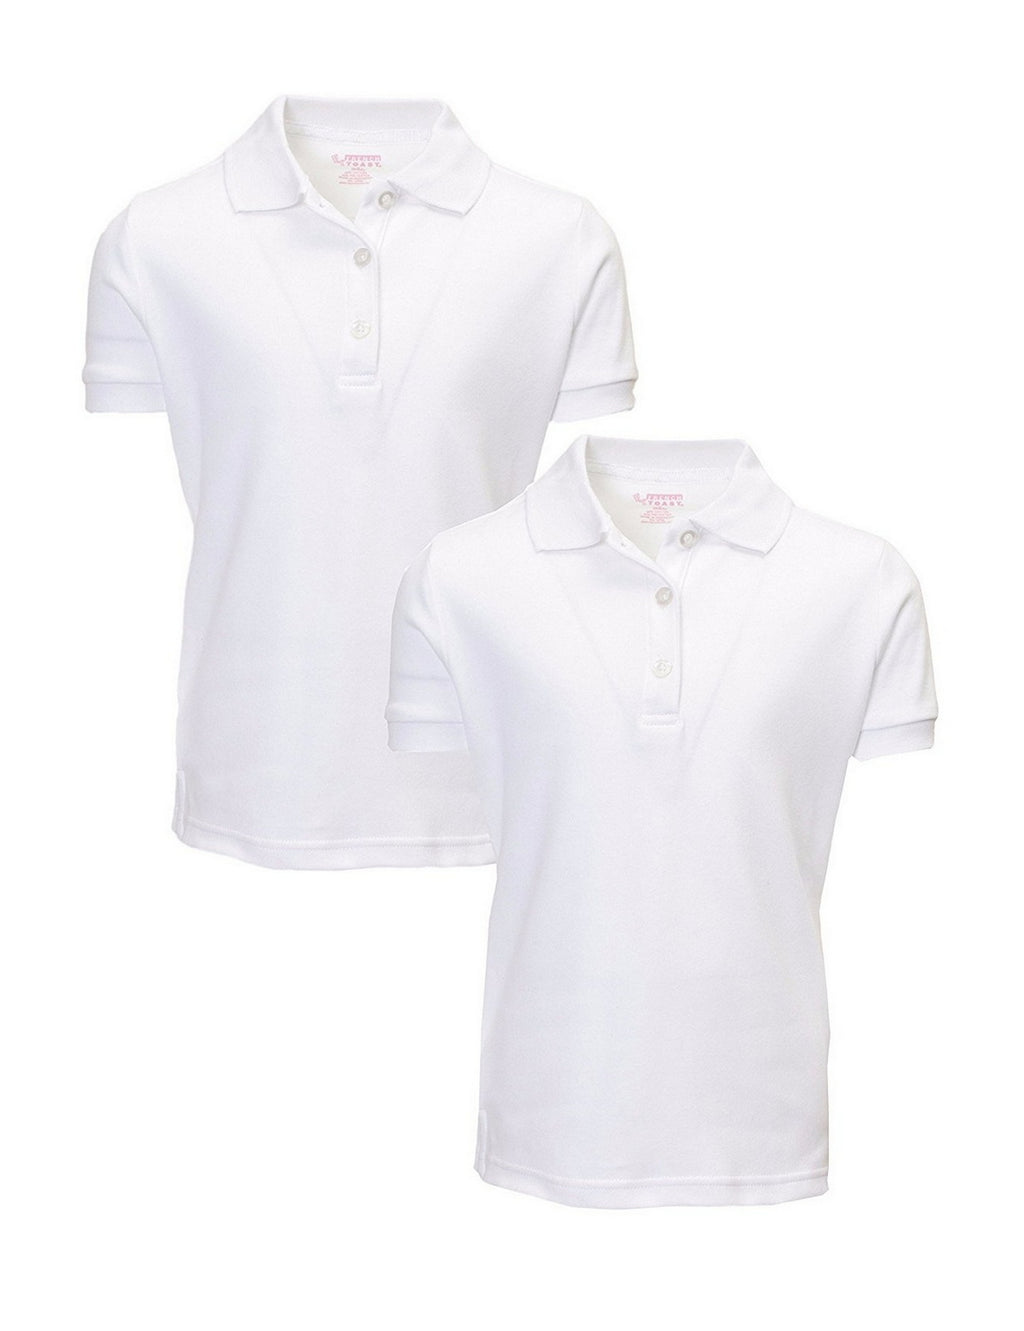 french-toast-girl's-uniform-polo-2-pack-short-sleeve-interlock